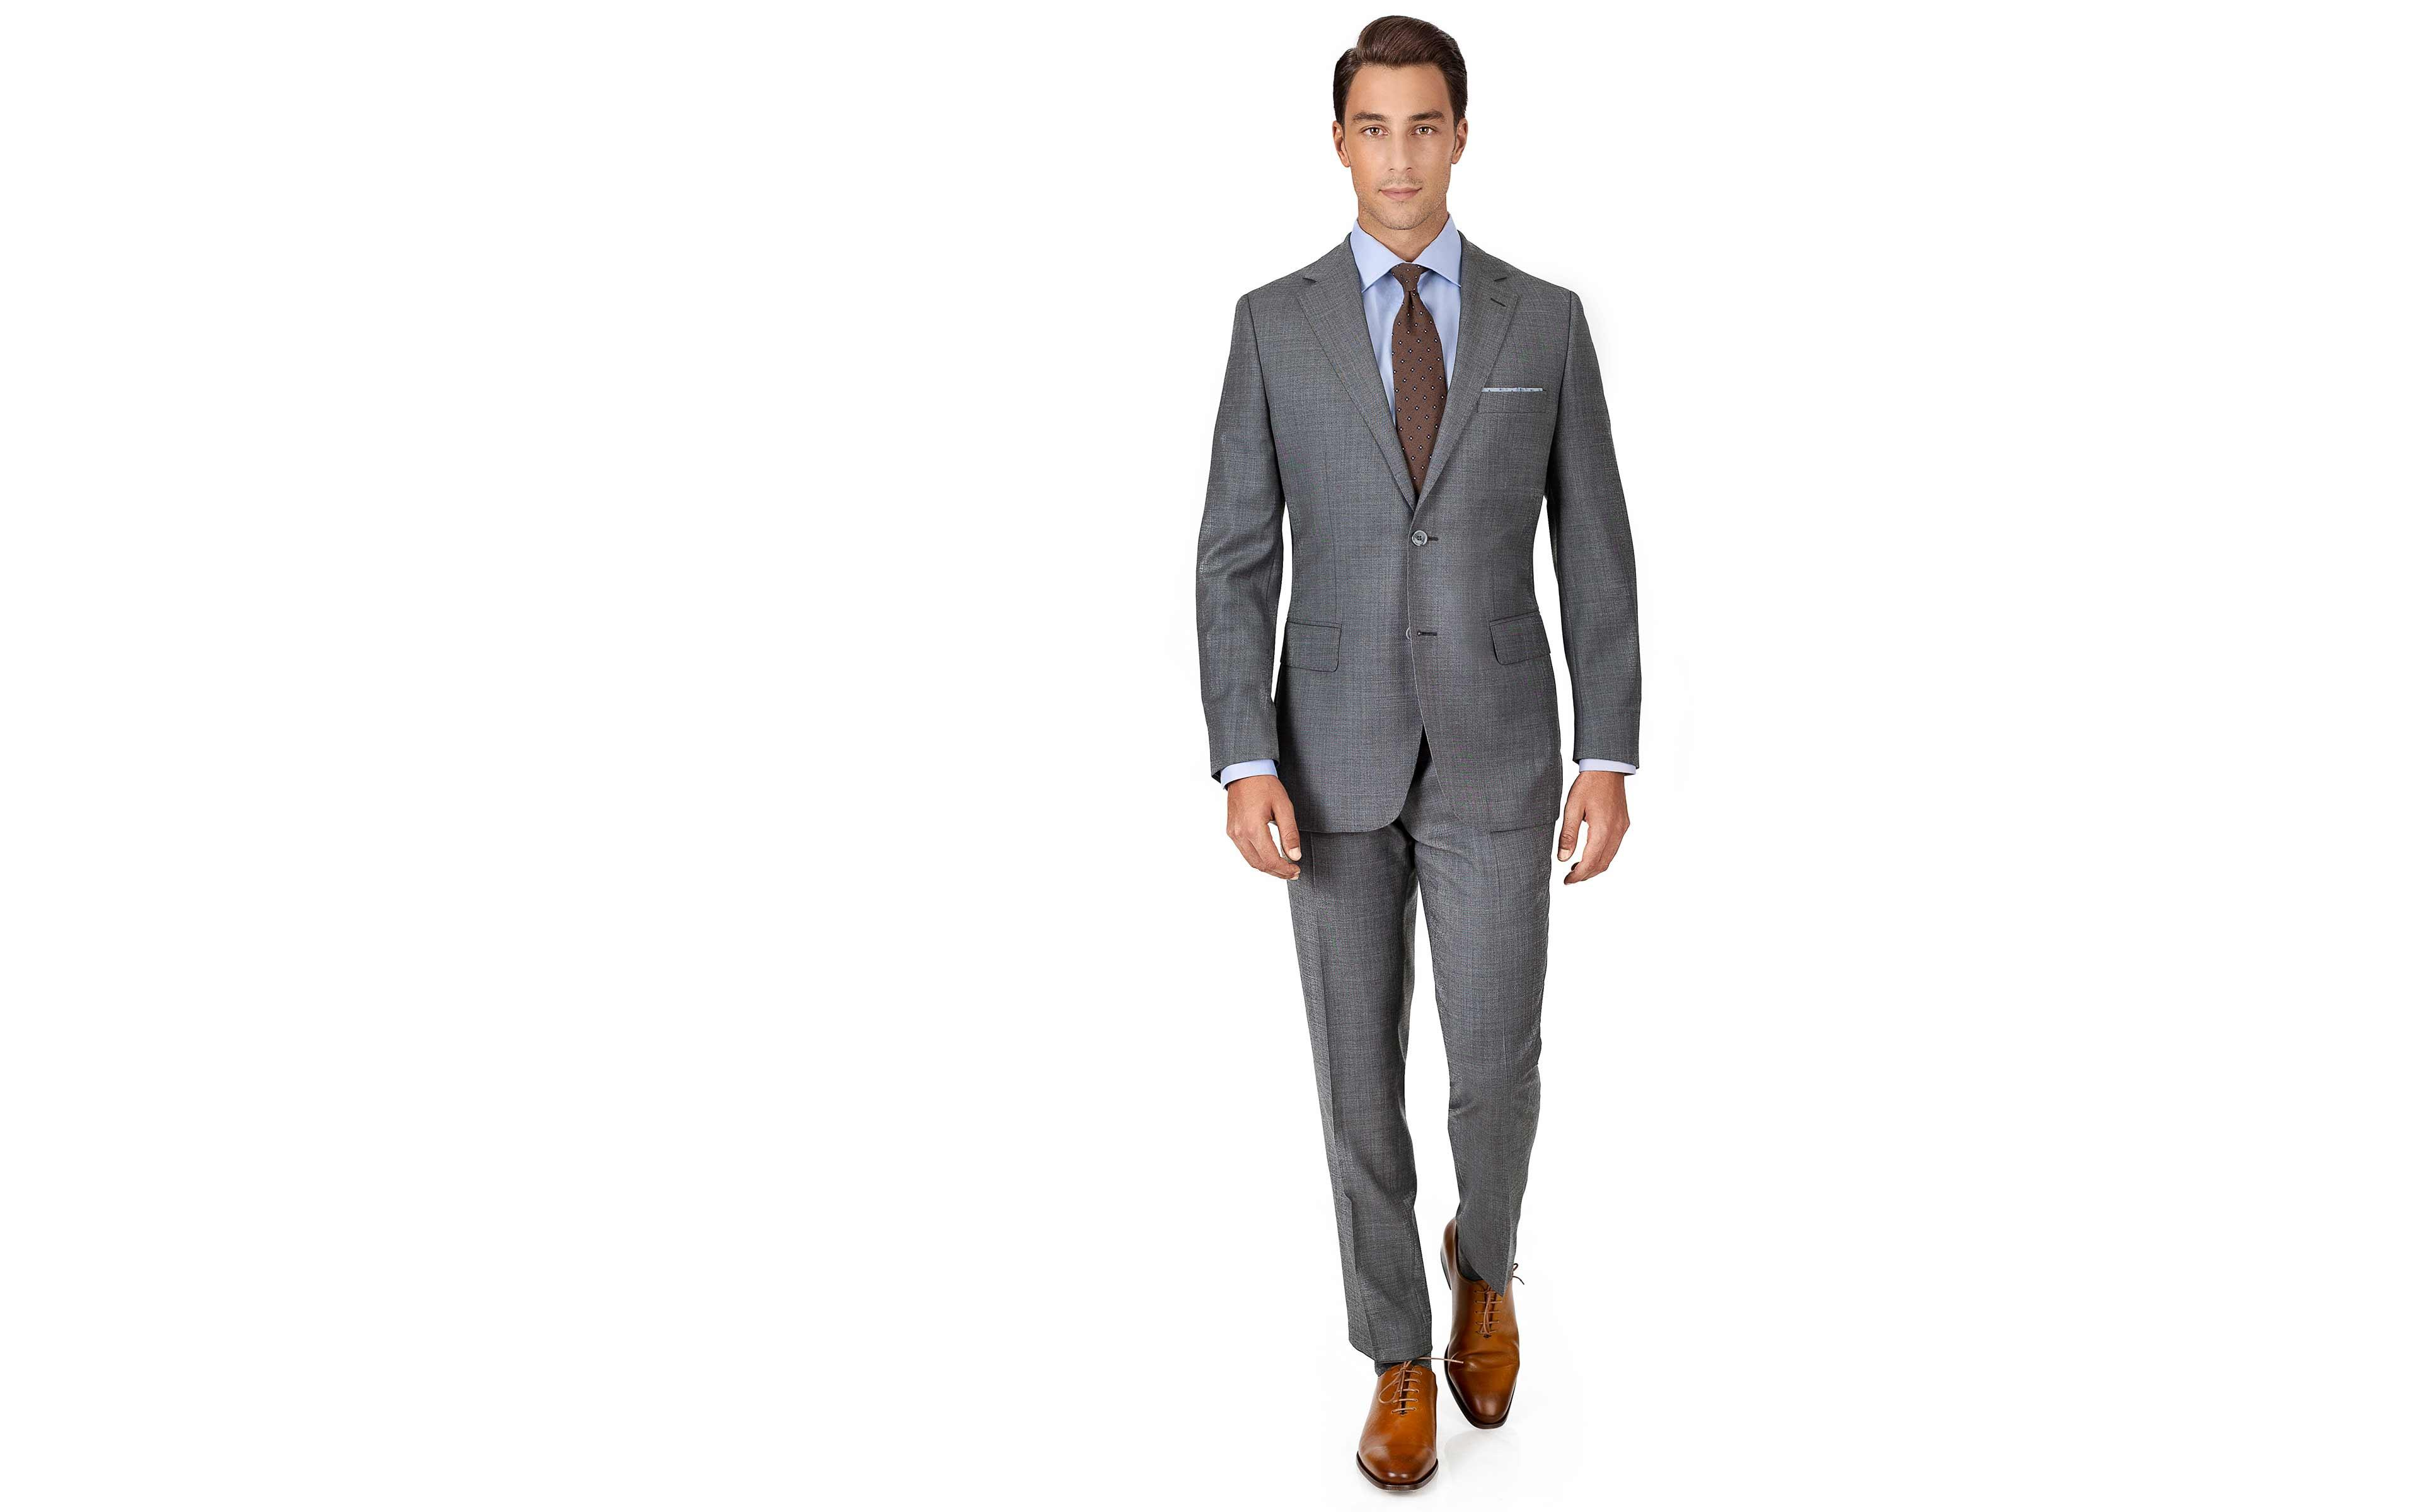 Suit in Grey Pick & Pick Wool